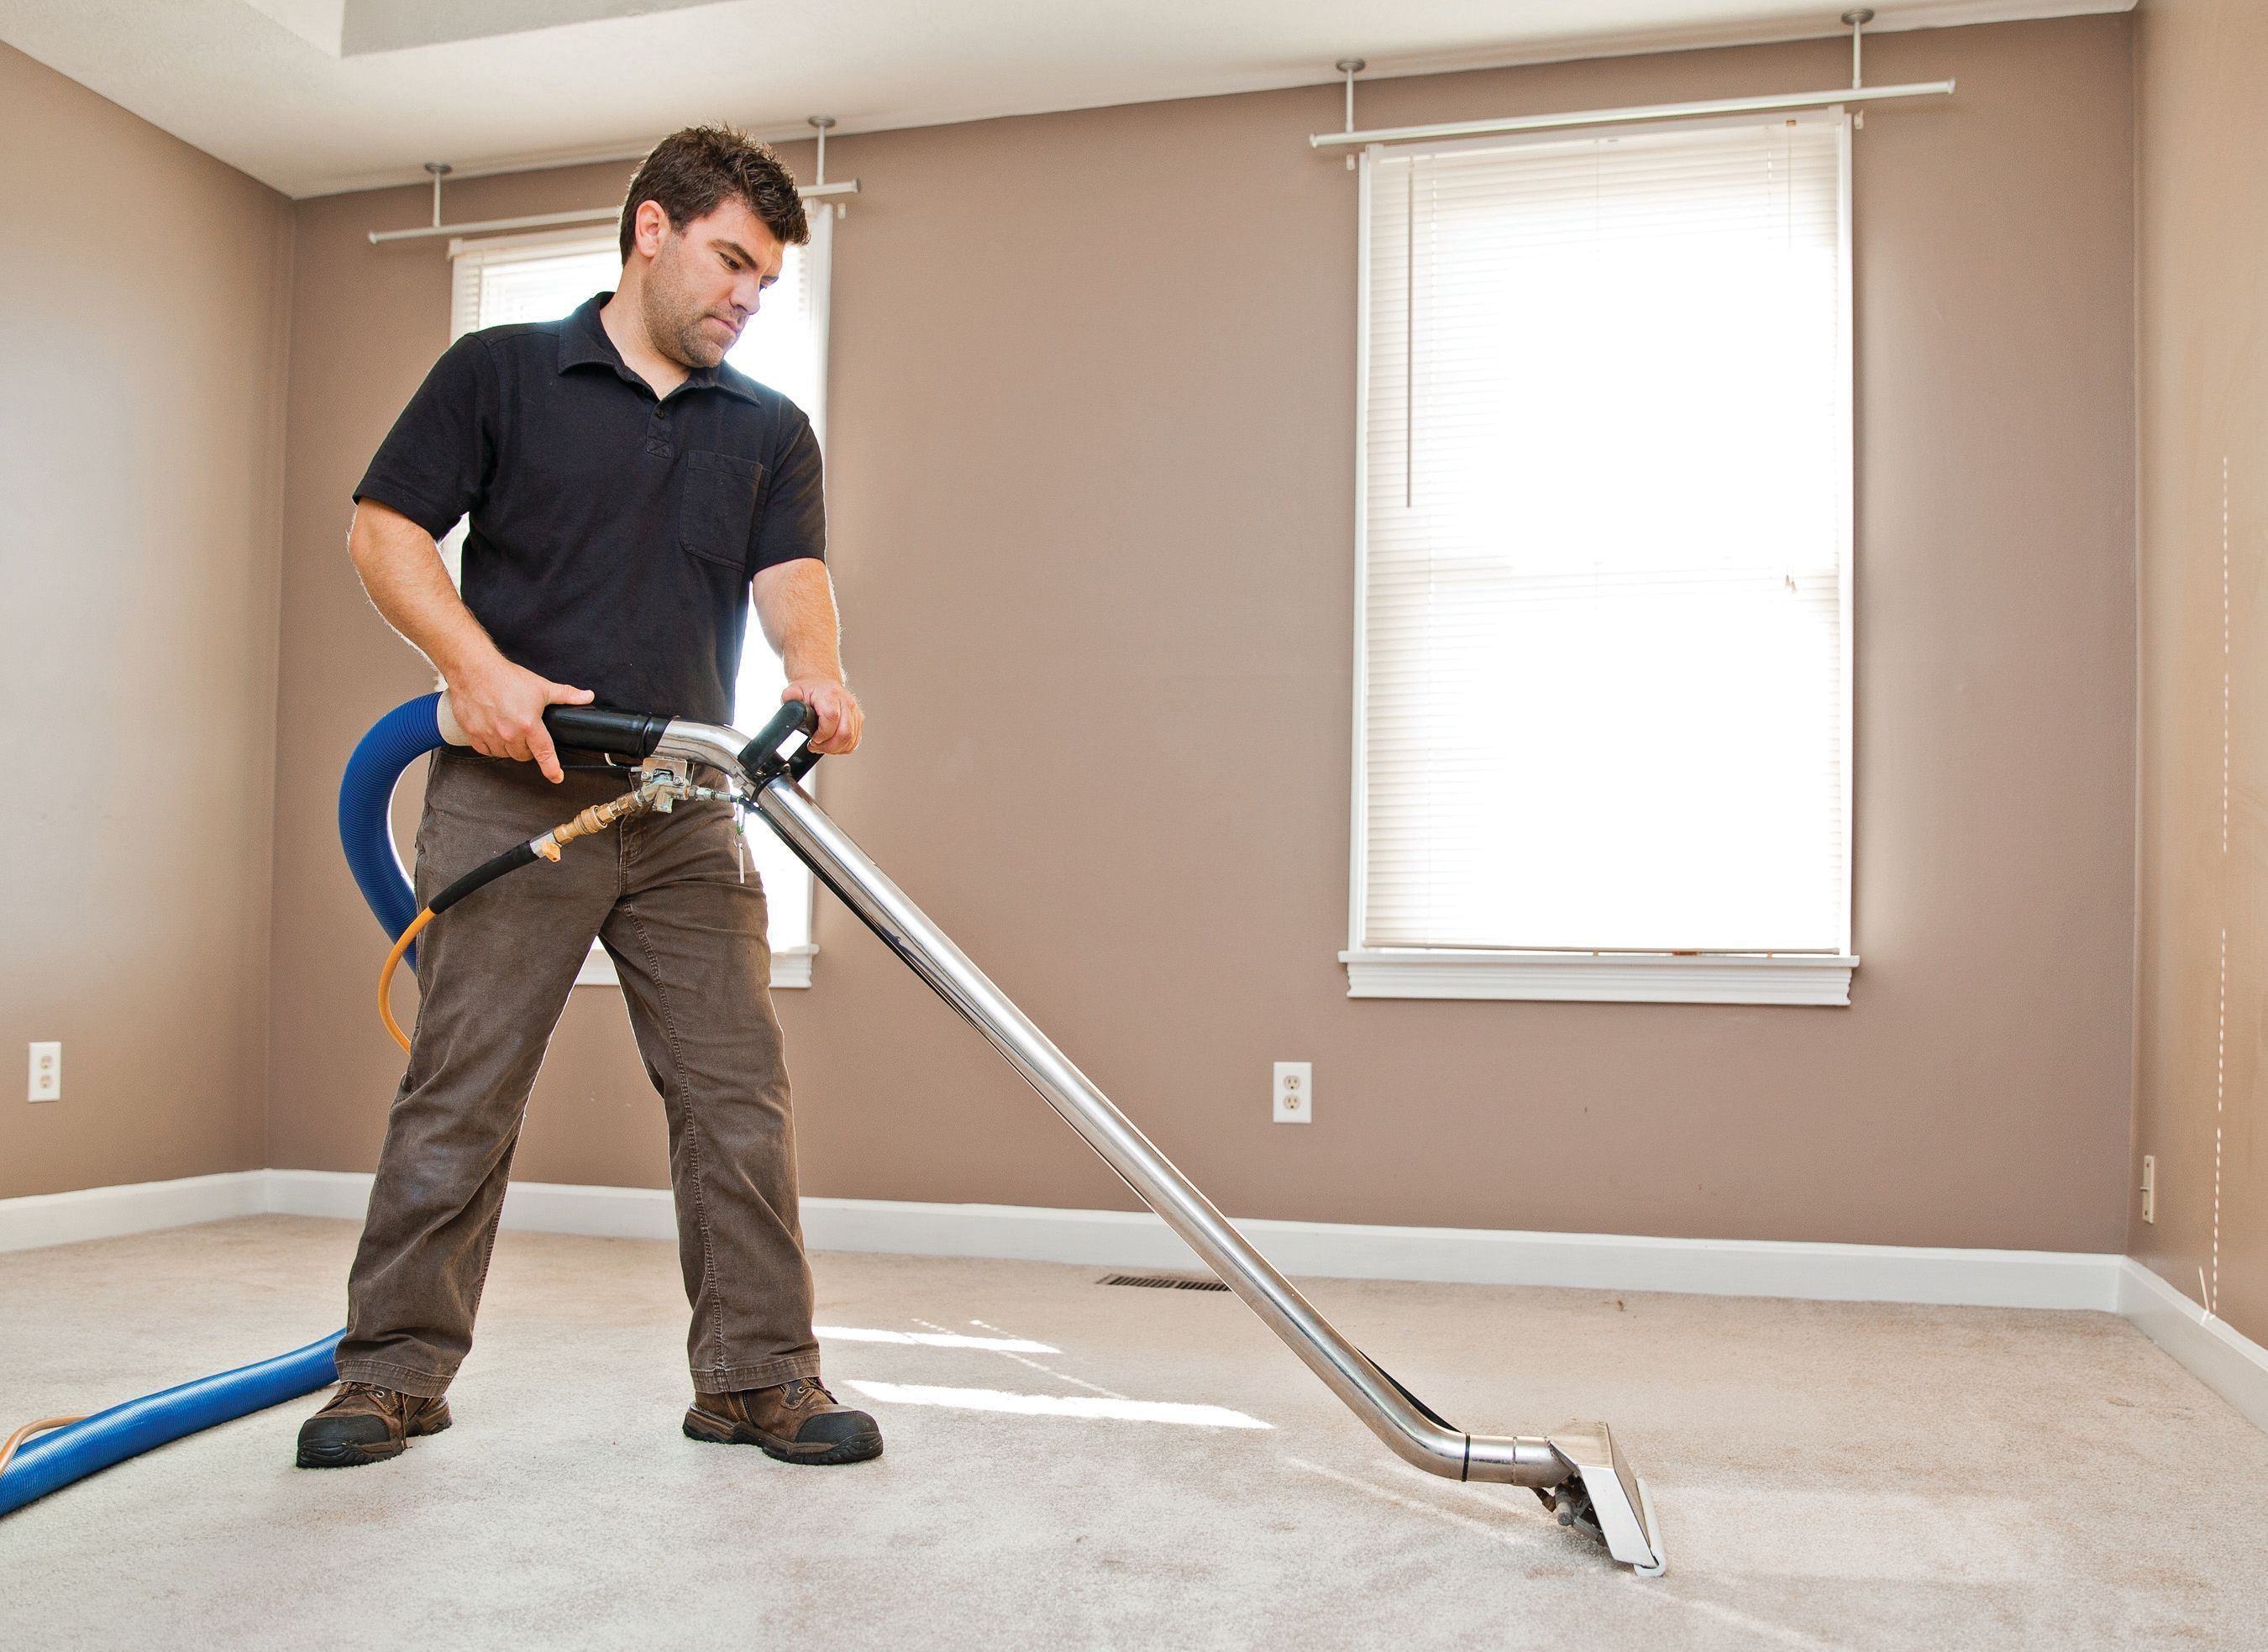 hardwood floor vacuum and cleaner of carpet cleaning expert at work carpet cleaning tips pinterest pertaining to carpet cleaning expert at work